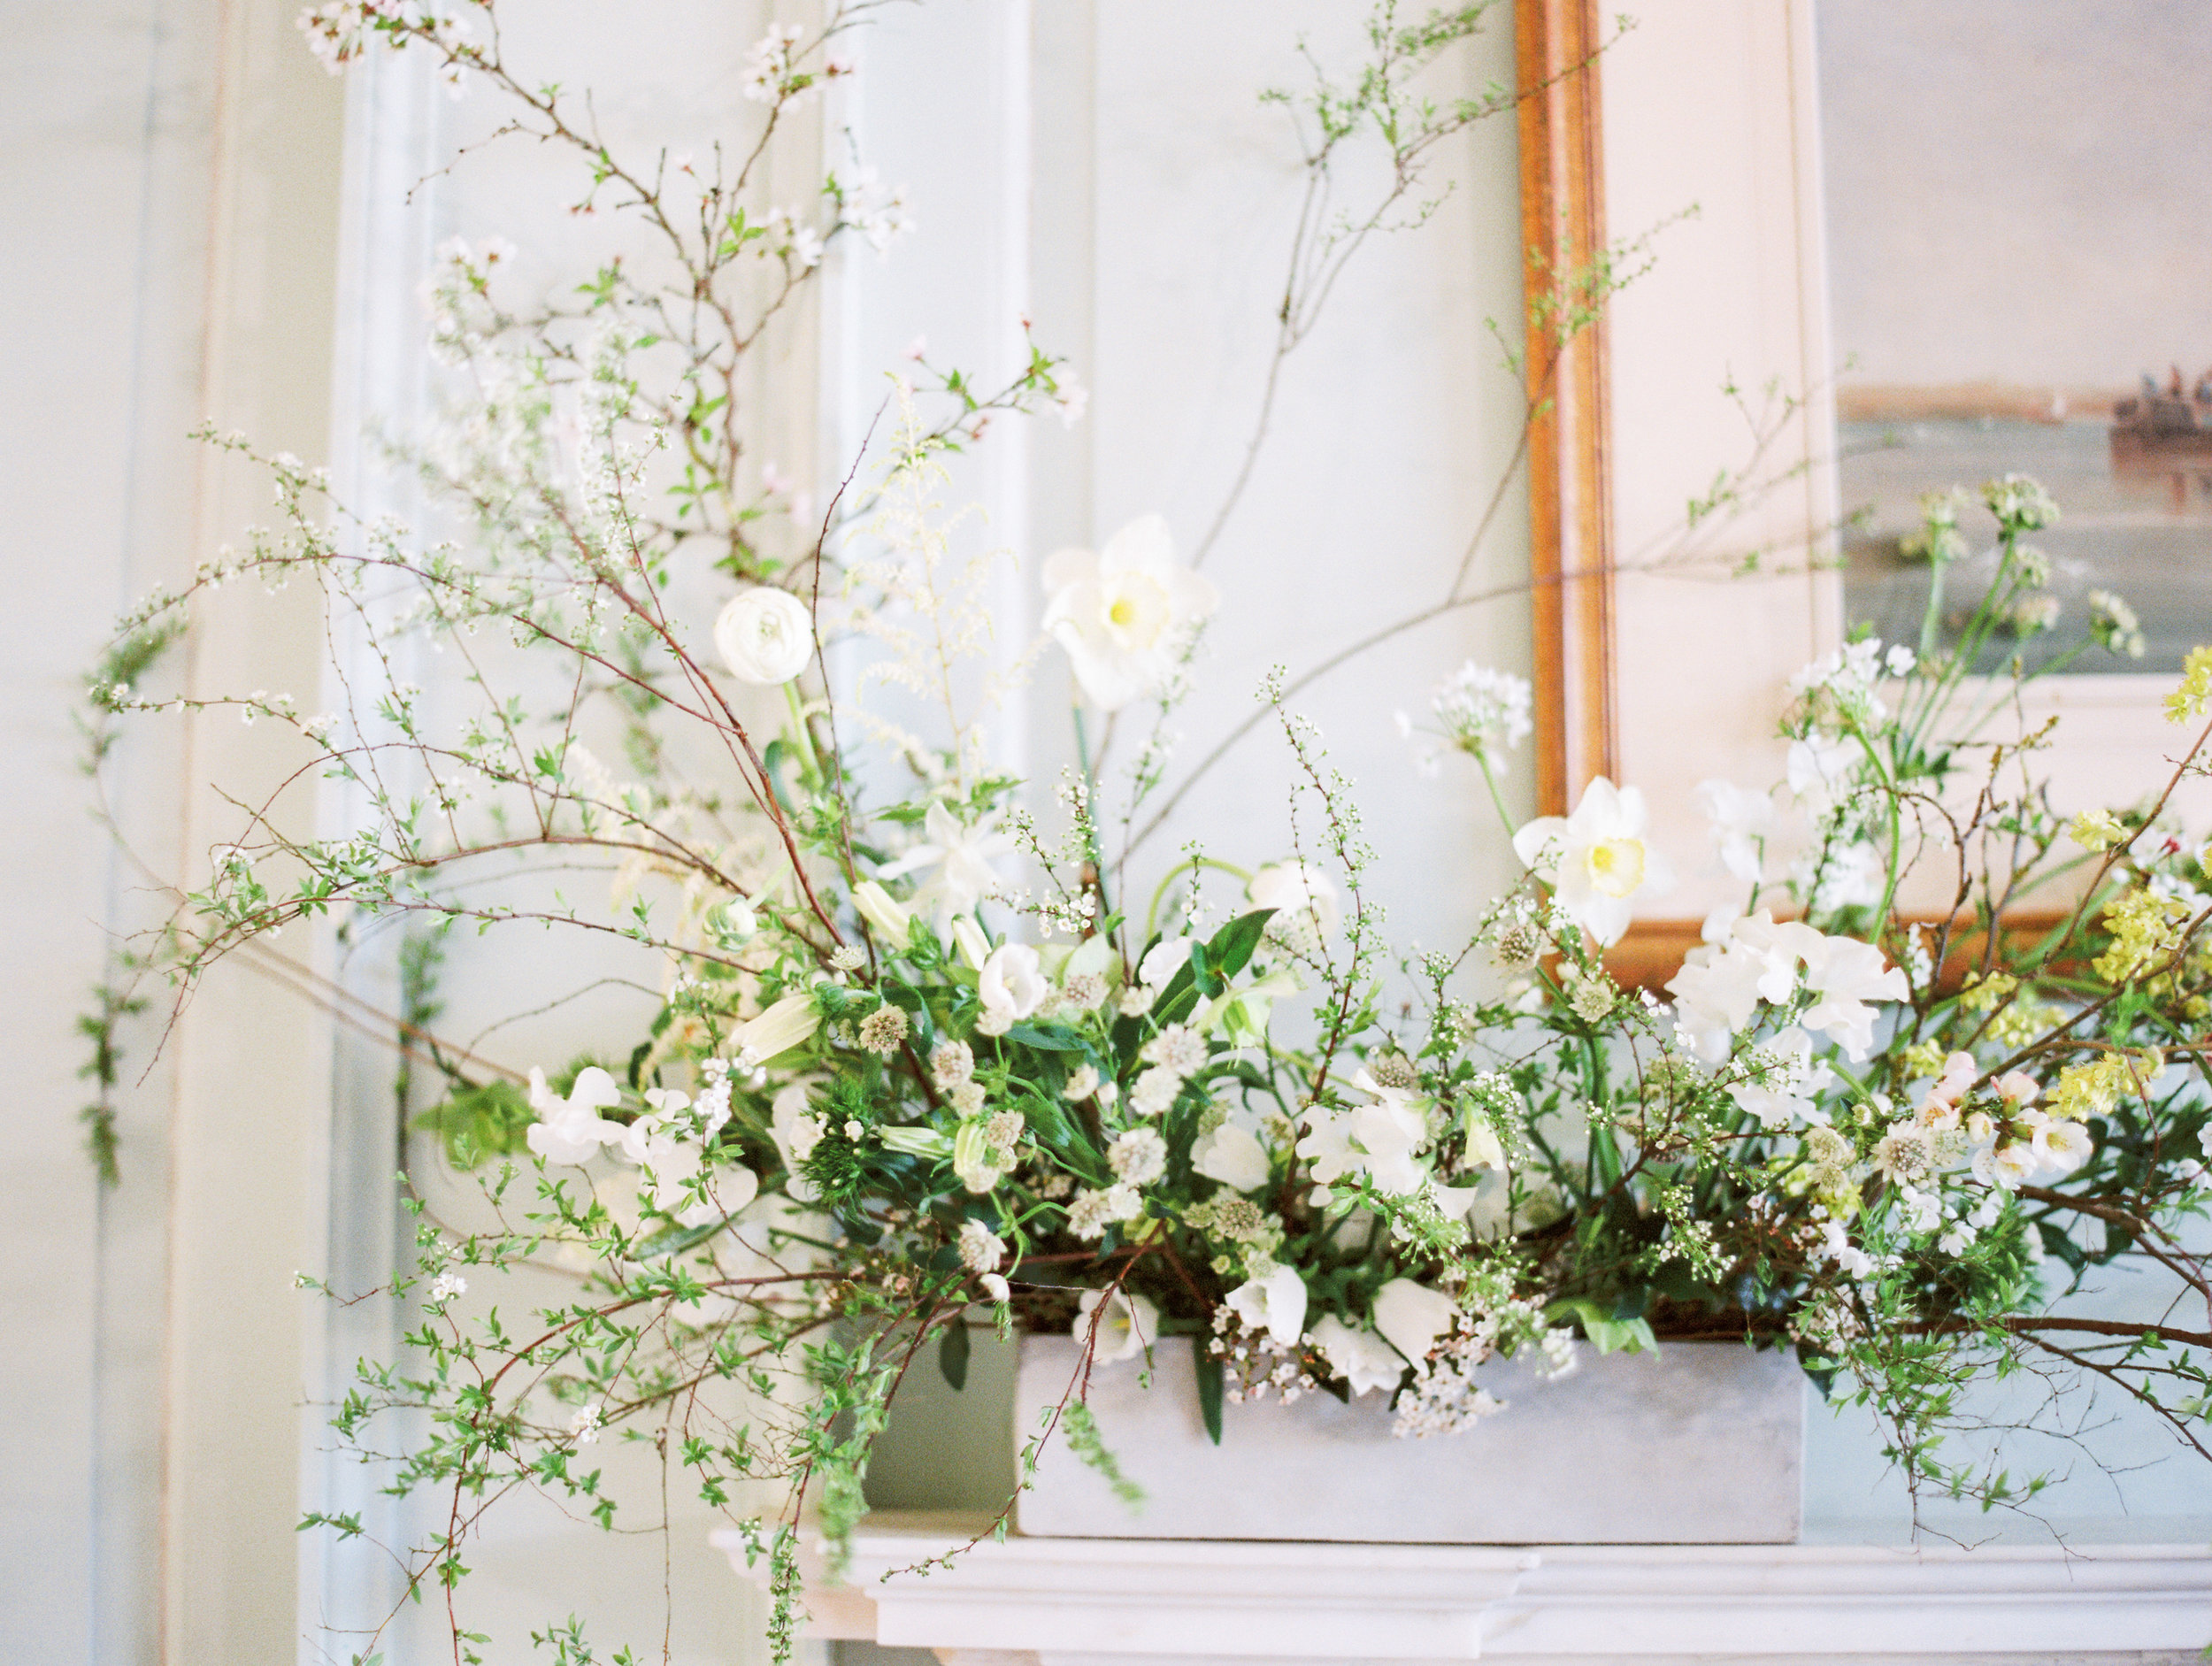 The Timeless Stylist-Elegant and Timeless Wedding Design and Styling-Spring Wedding Flowers at Boconnoc Stately Home Wedding Venue